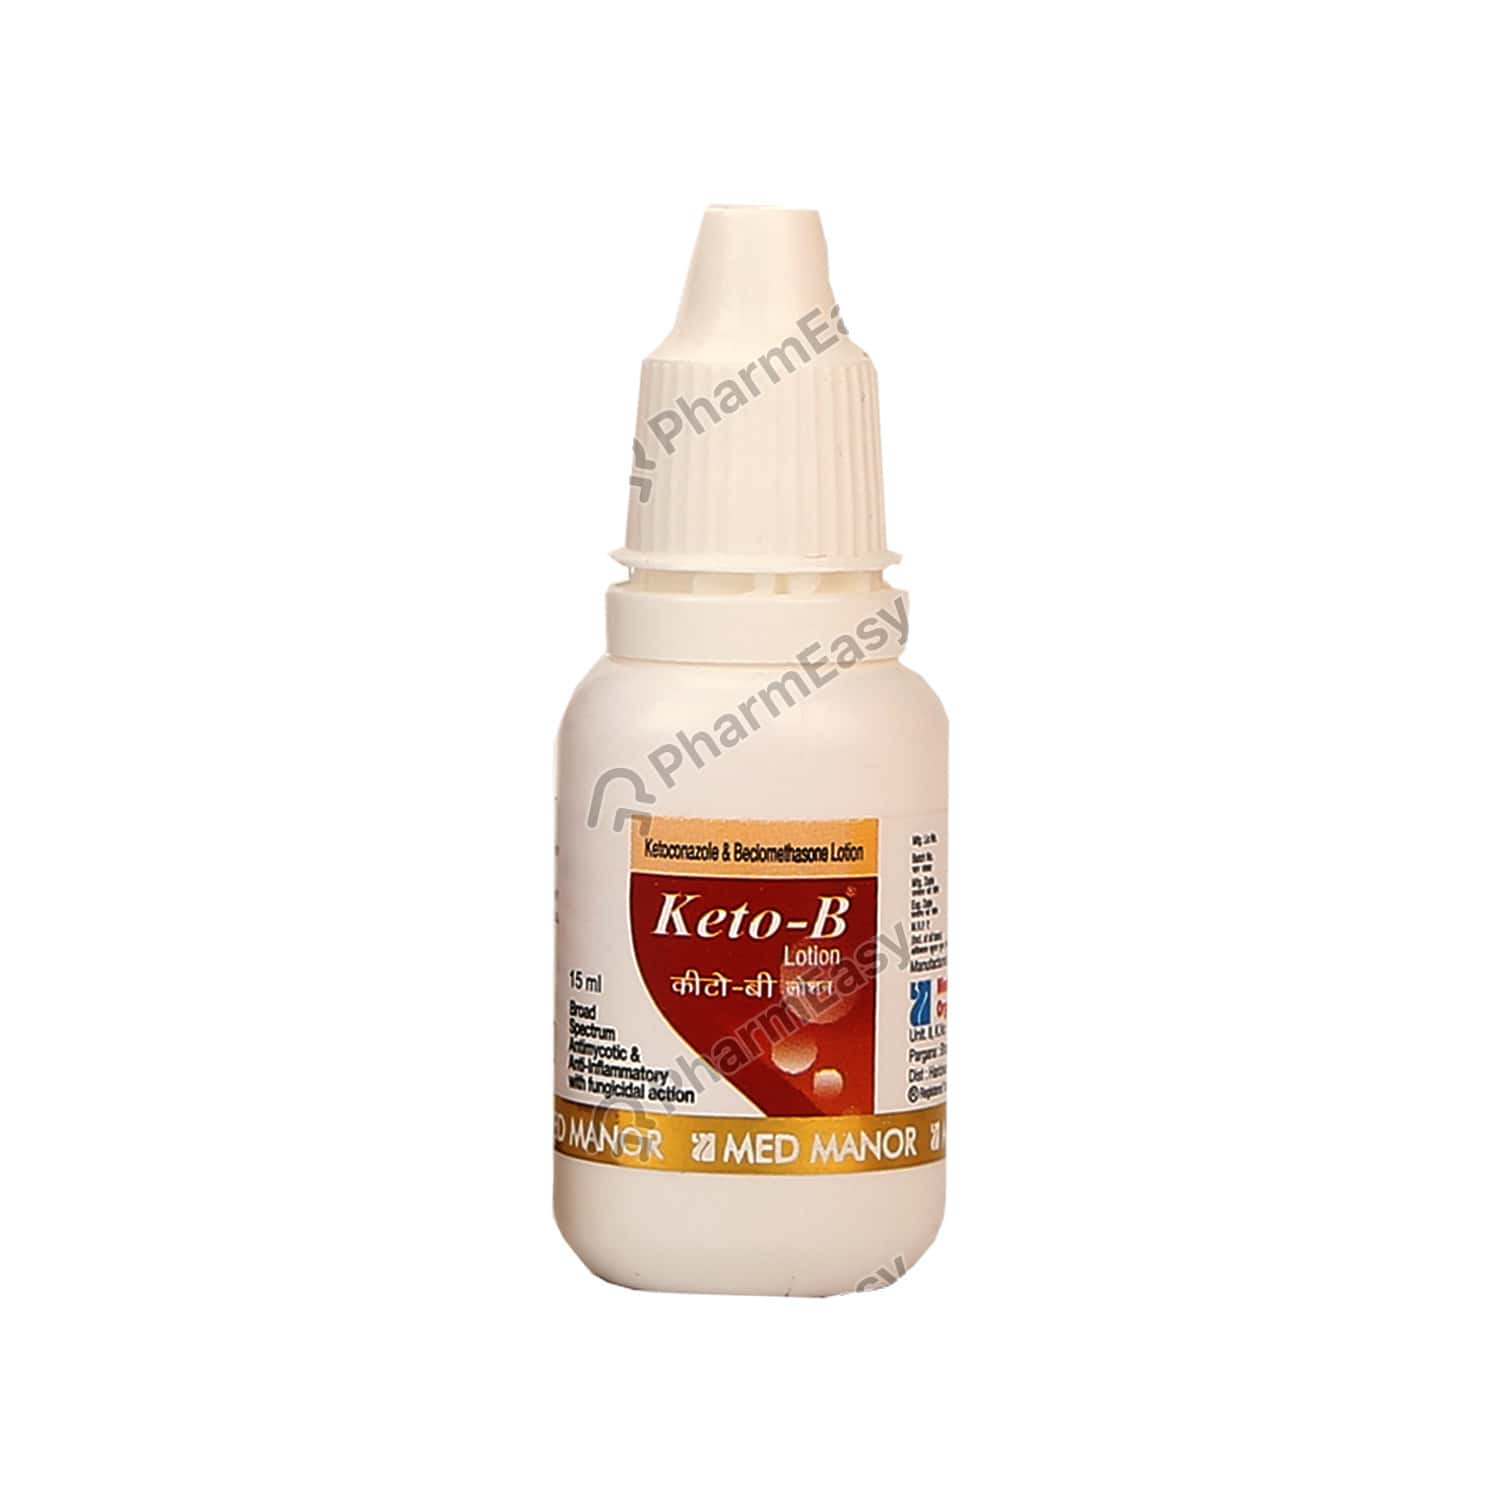 Keto B Lotion 15ml